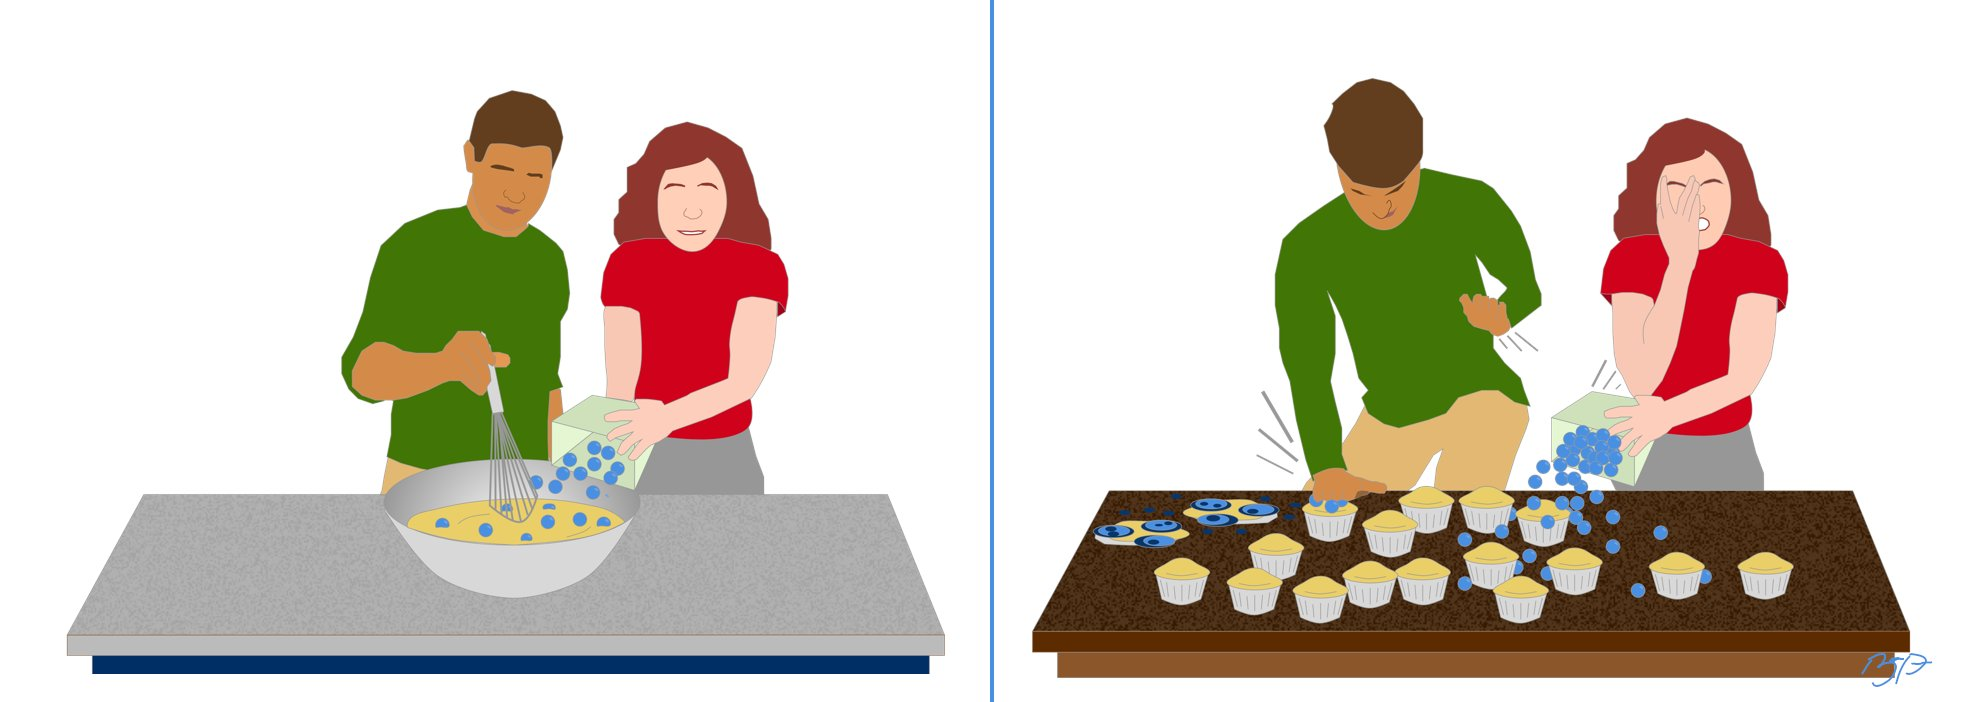 Brian Parson's blueberry muffin graphic with two panels. The left illustrates two people adding blueberries to the batter before baking the muffins. The right panel displays baked muffins, one person holds a container of blueberries while the other person attempts to smash the blueberries into the baked muffins, crushing the muffins.